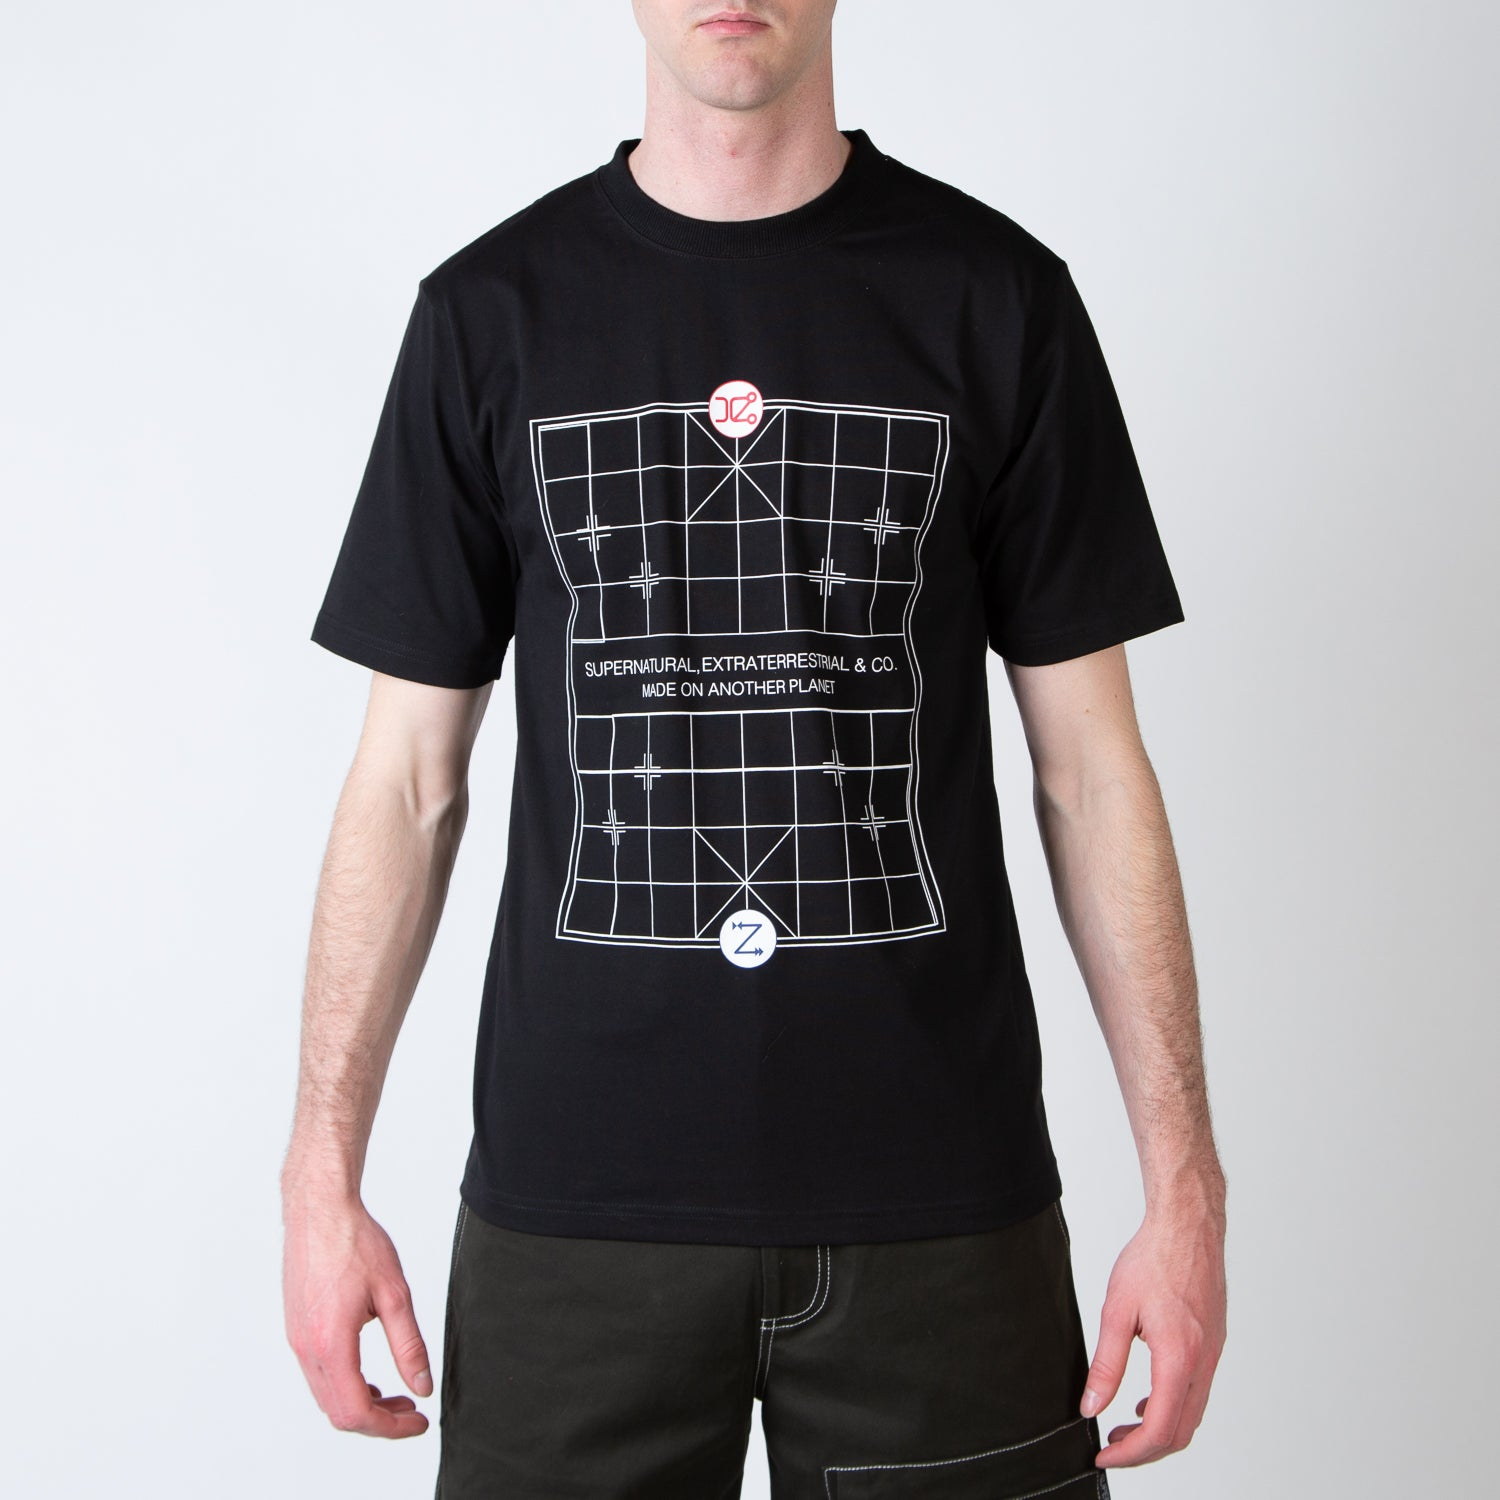 Chess Board Graphic T-shirt